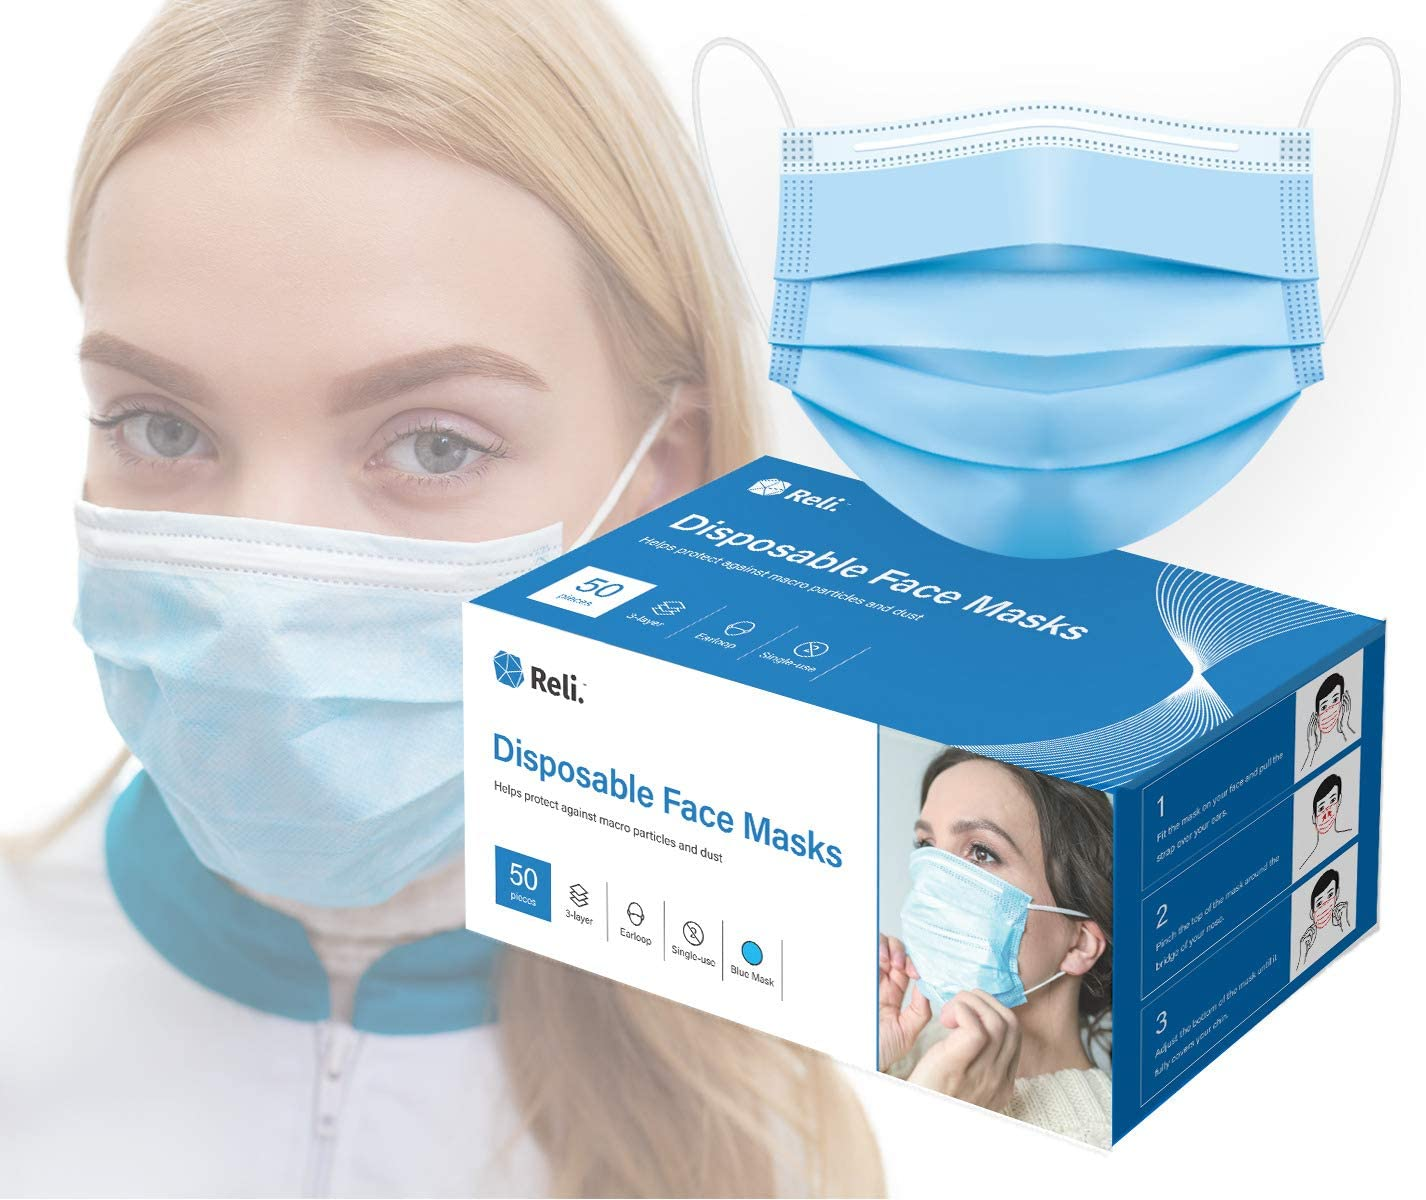 Reli. Face Masks (50 Masks) Disposable Face Mask Protection with Filter Layer - 3 PLY - Breathable, Ear Loop Mask 50 Pack Pcs (Blue)